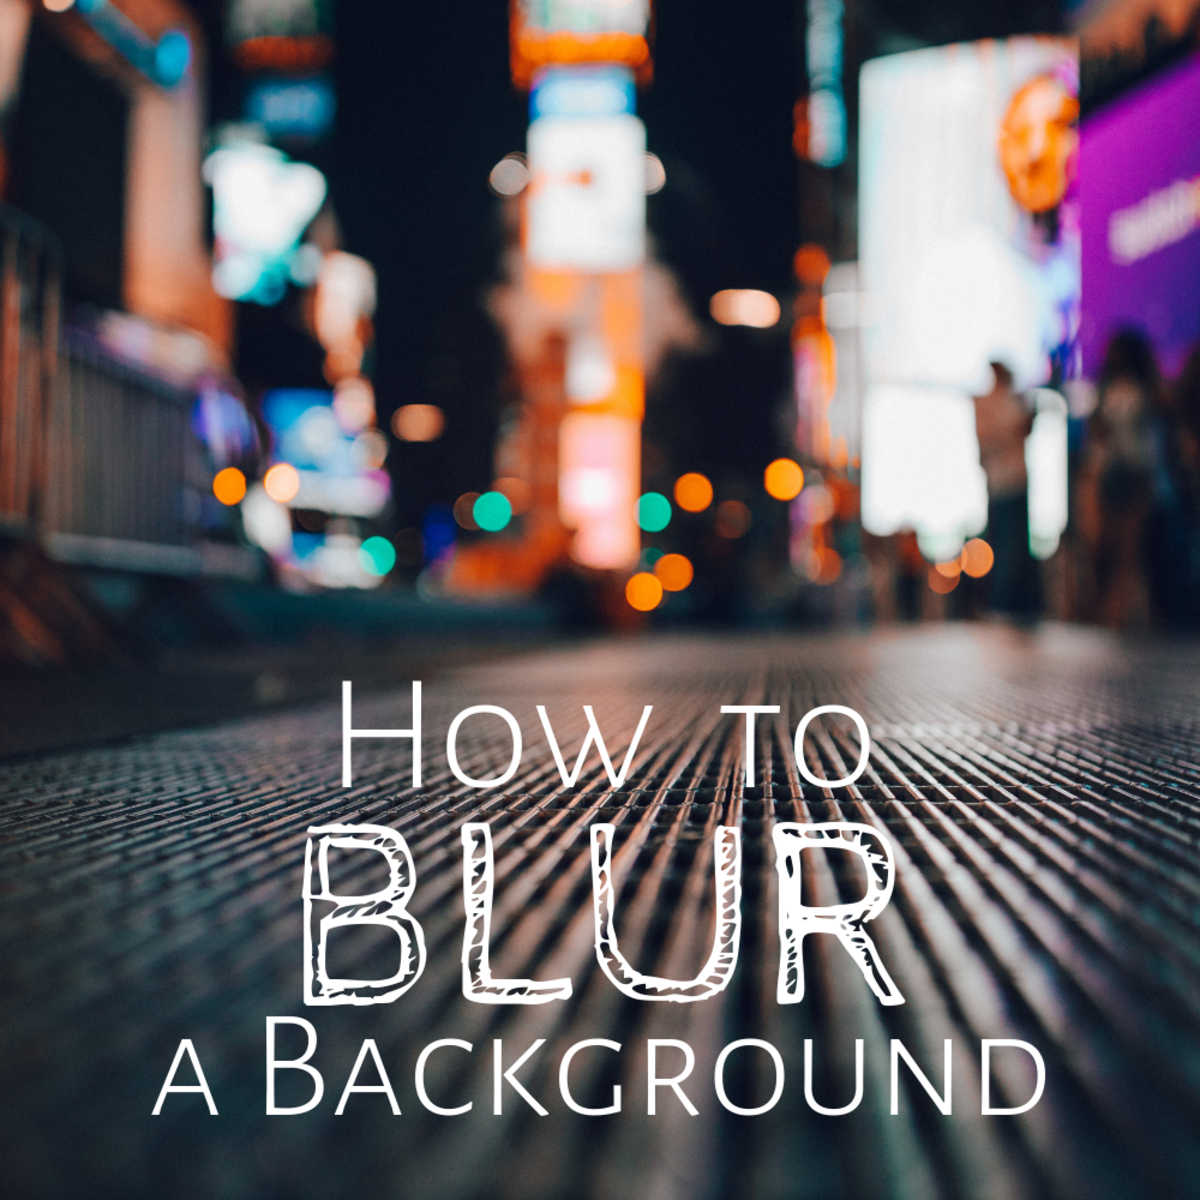 How To Take A Photo With A Blurred Background Feltmagnet